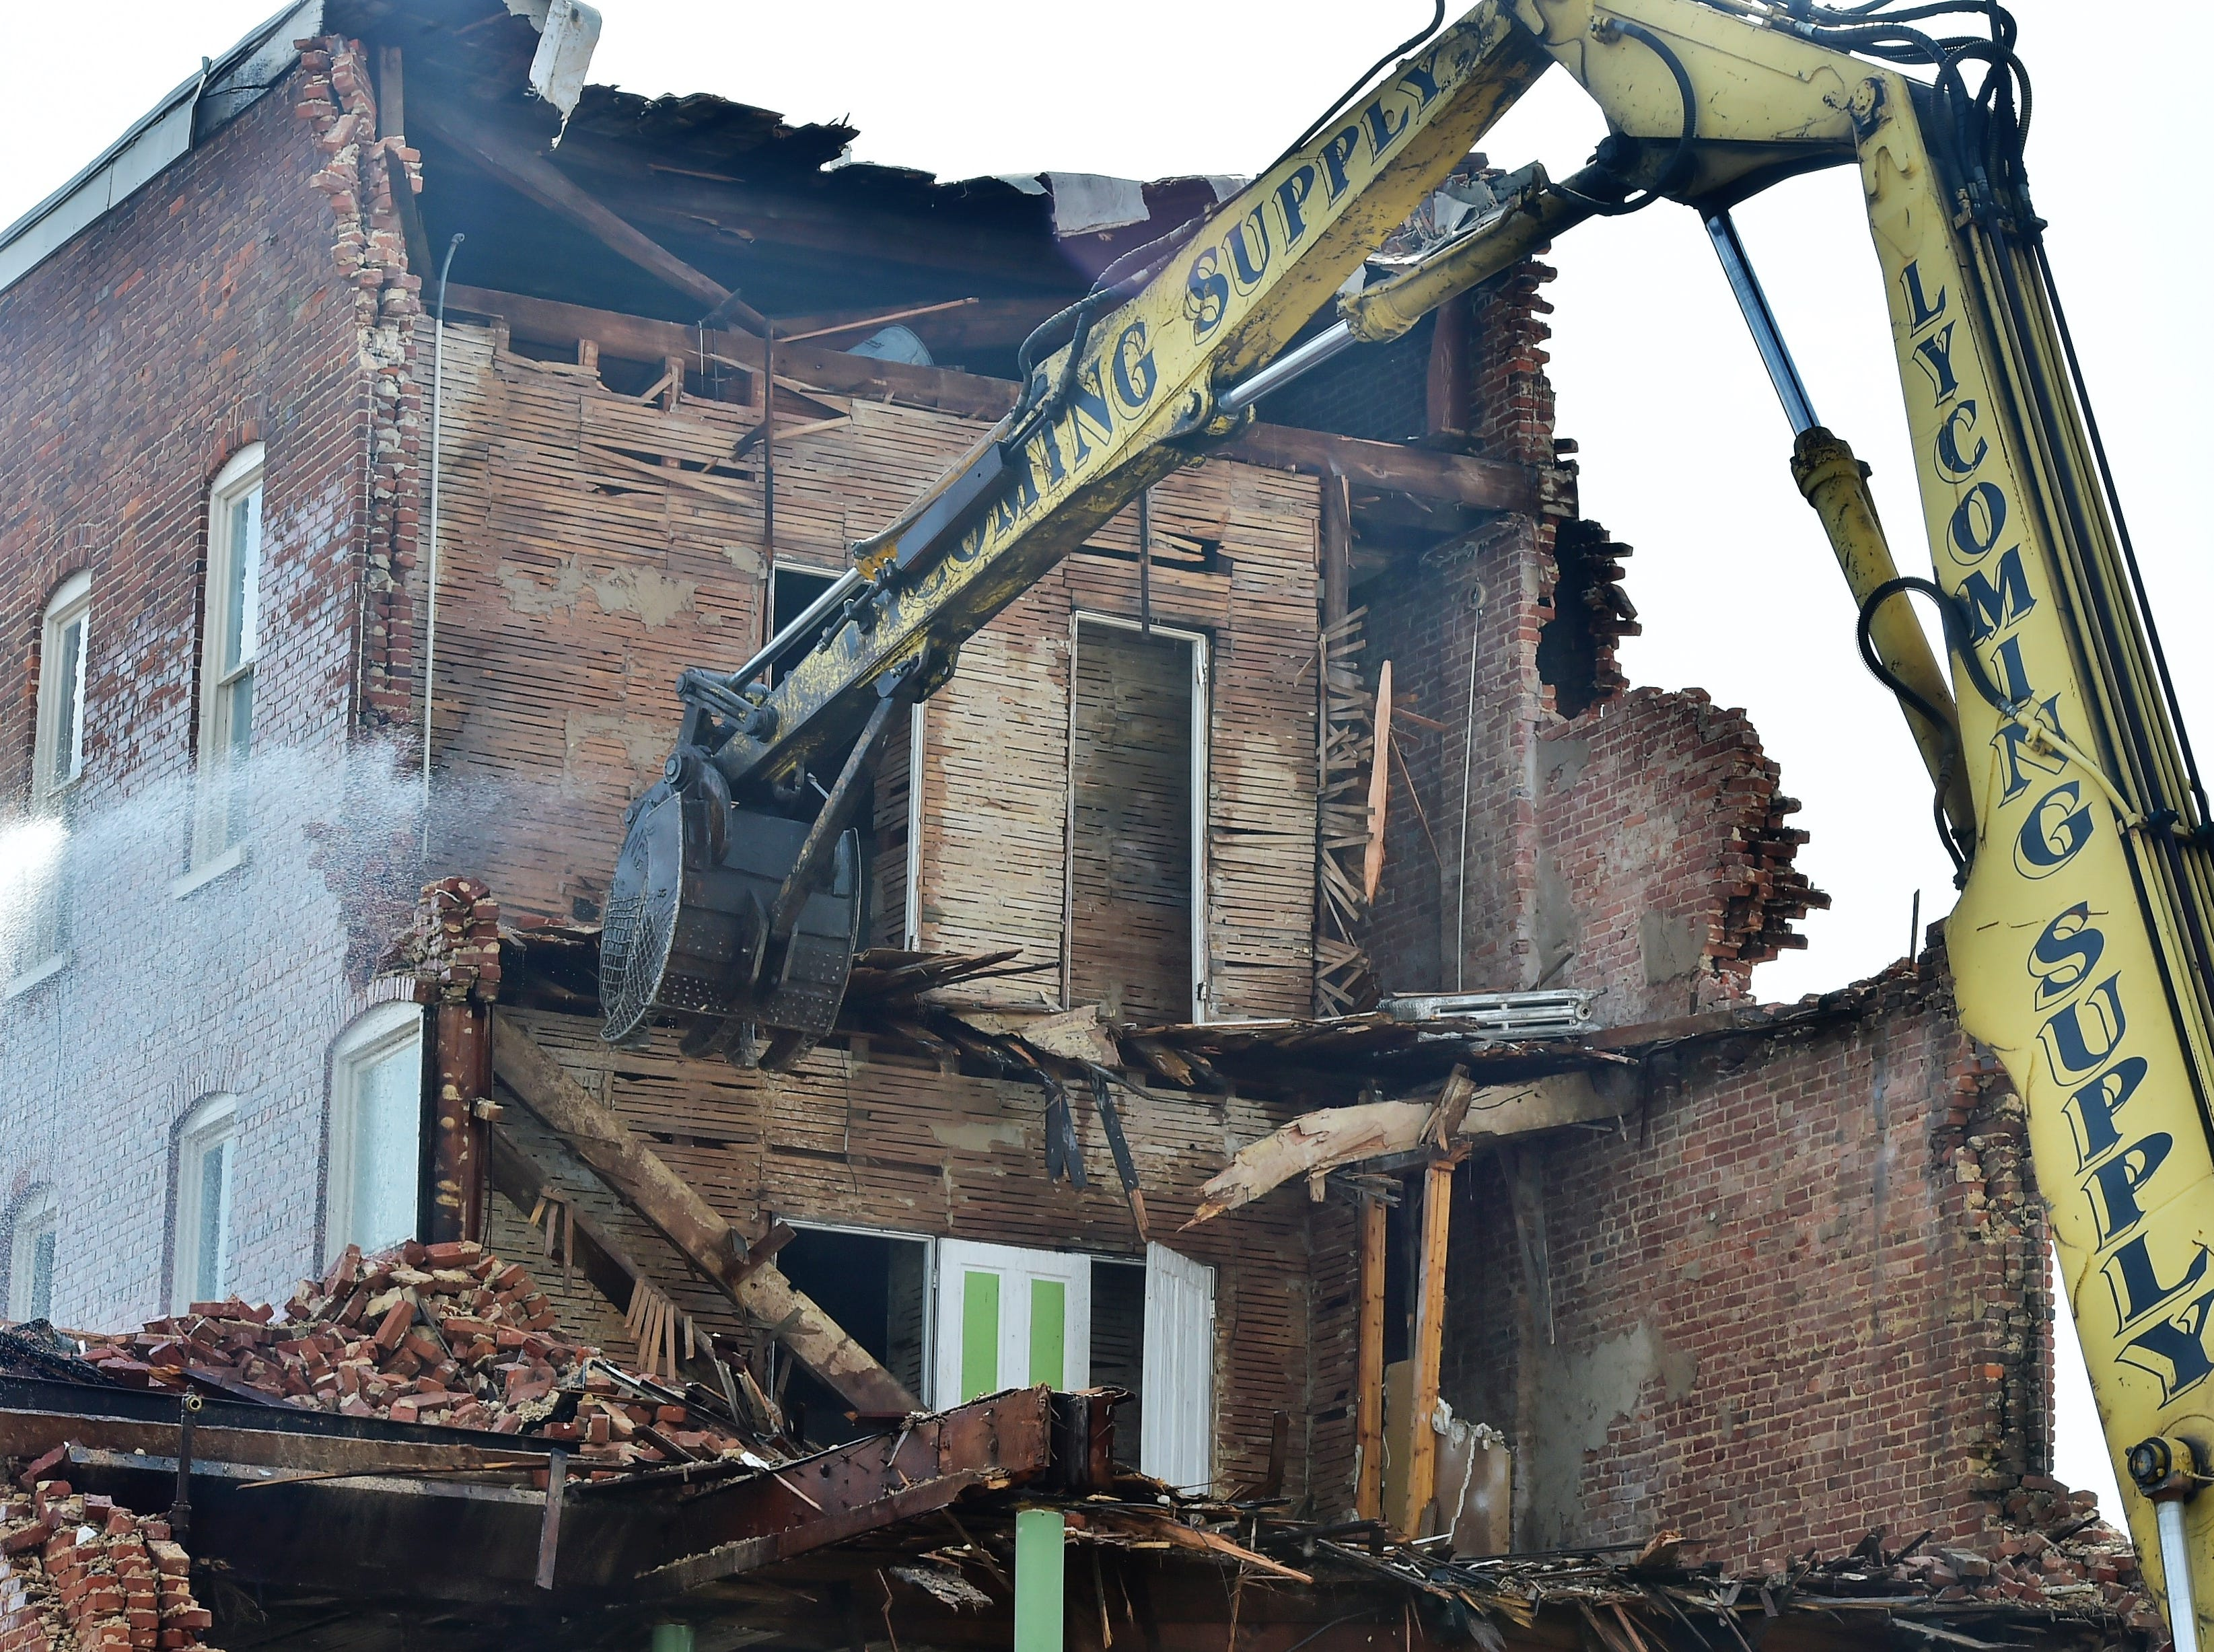 Water is sprayed to help settle dust as the old Wogan's Uniform building on North Main Street, Chambersburg, is demolished on Tuesday, April 9, 2019. Traffic will be limited to one lane through the end of the week as work continues. Lycoming Supply is tearing down structures in the first block of North Main Street as part of the $67.8 million Franklin County Court Facility Improvement Project. A judicial center will be built in the space.